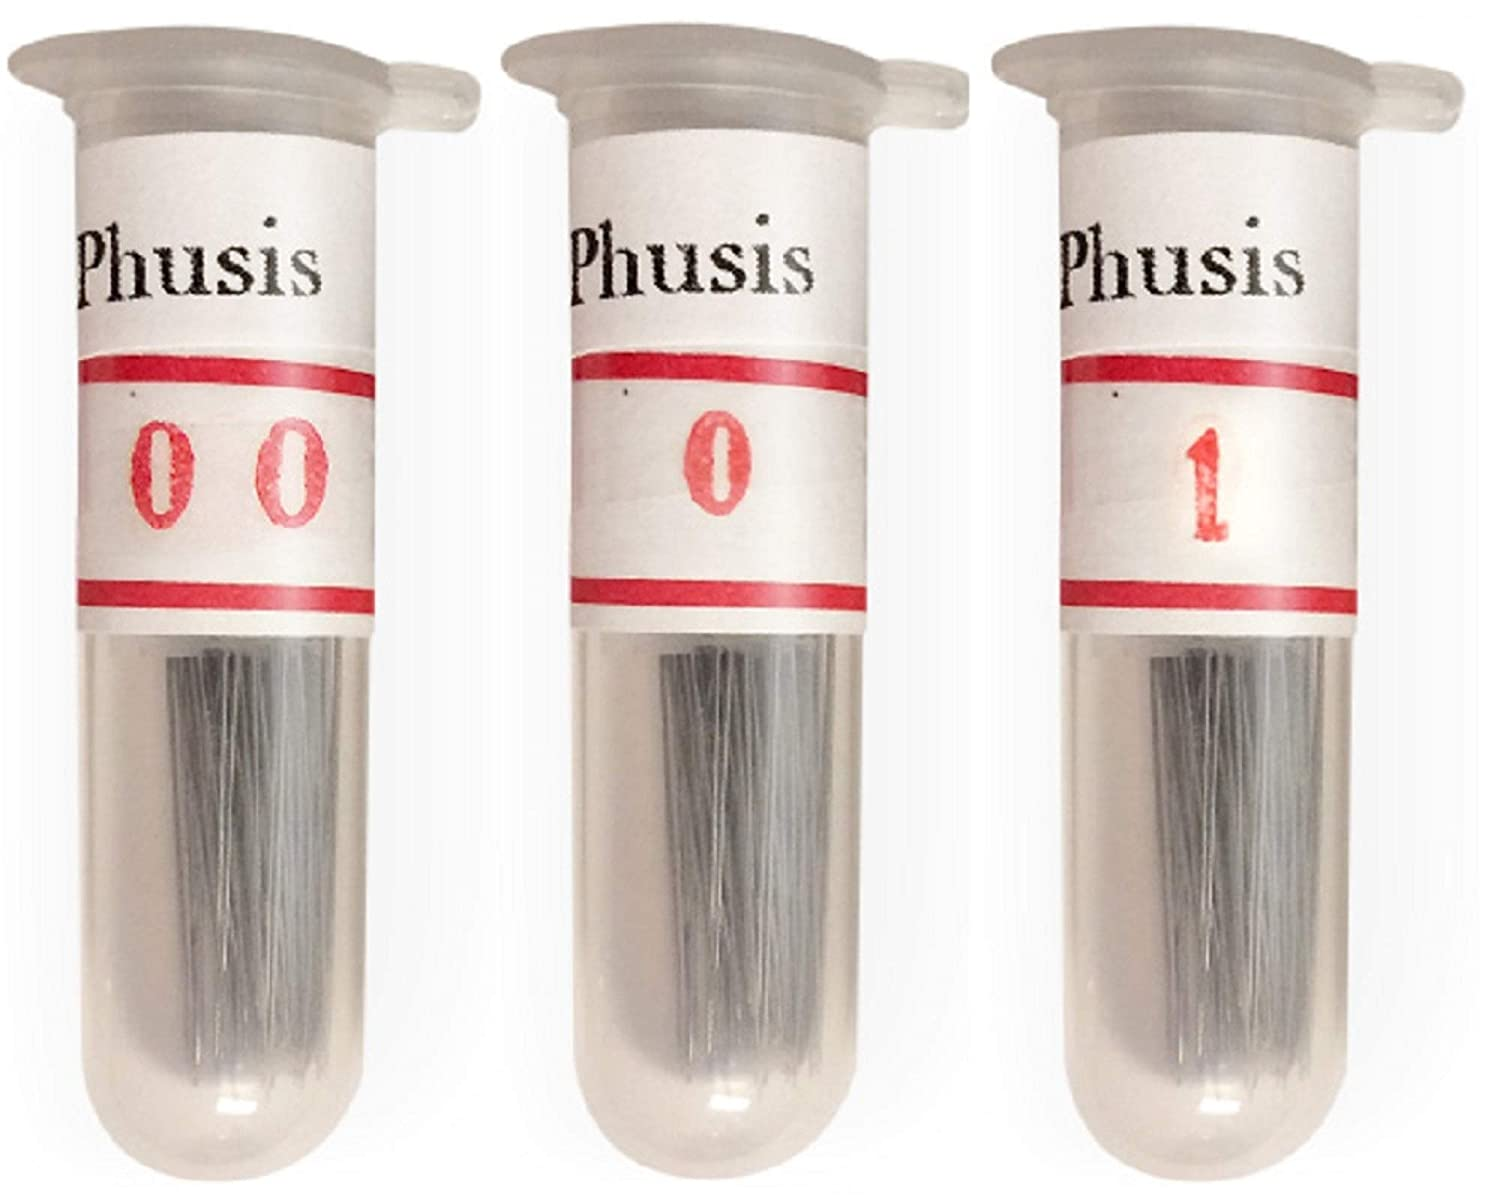 Phusis Stainless Steel Insect Pins | Sizes #00, 0 and #1 | 100 of Each Size | Includes Sturdy Storage Containers | for Entomology, Dissection, Butterfly Collections